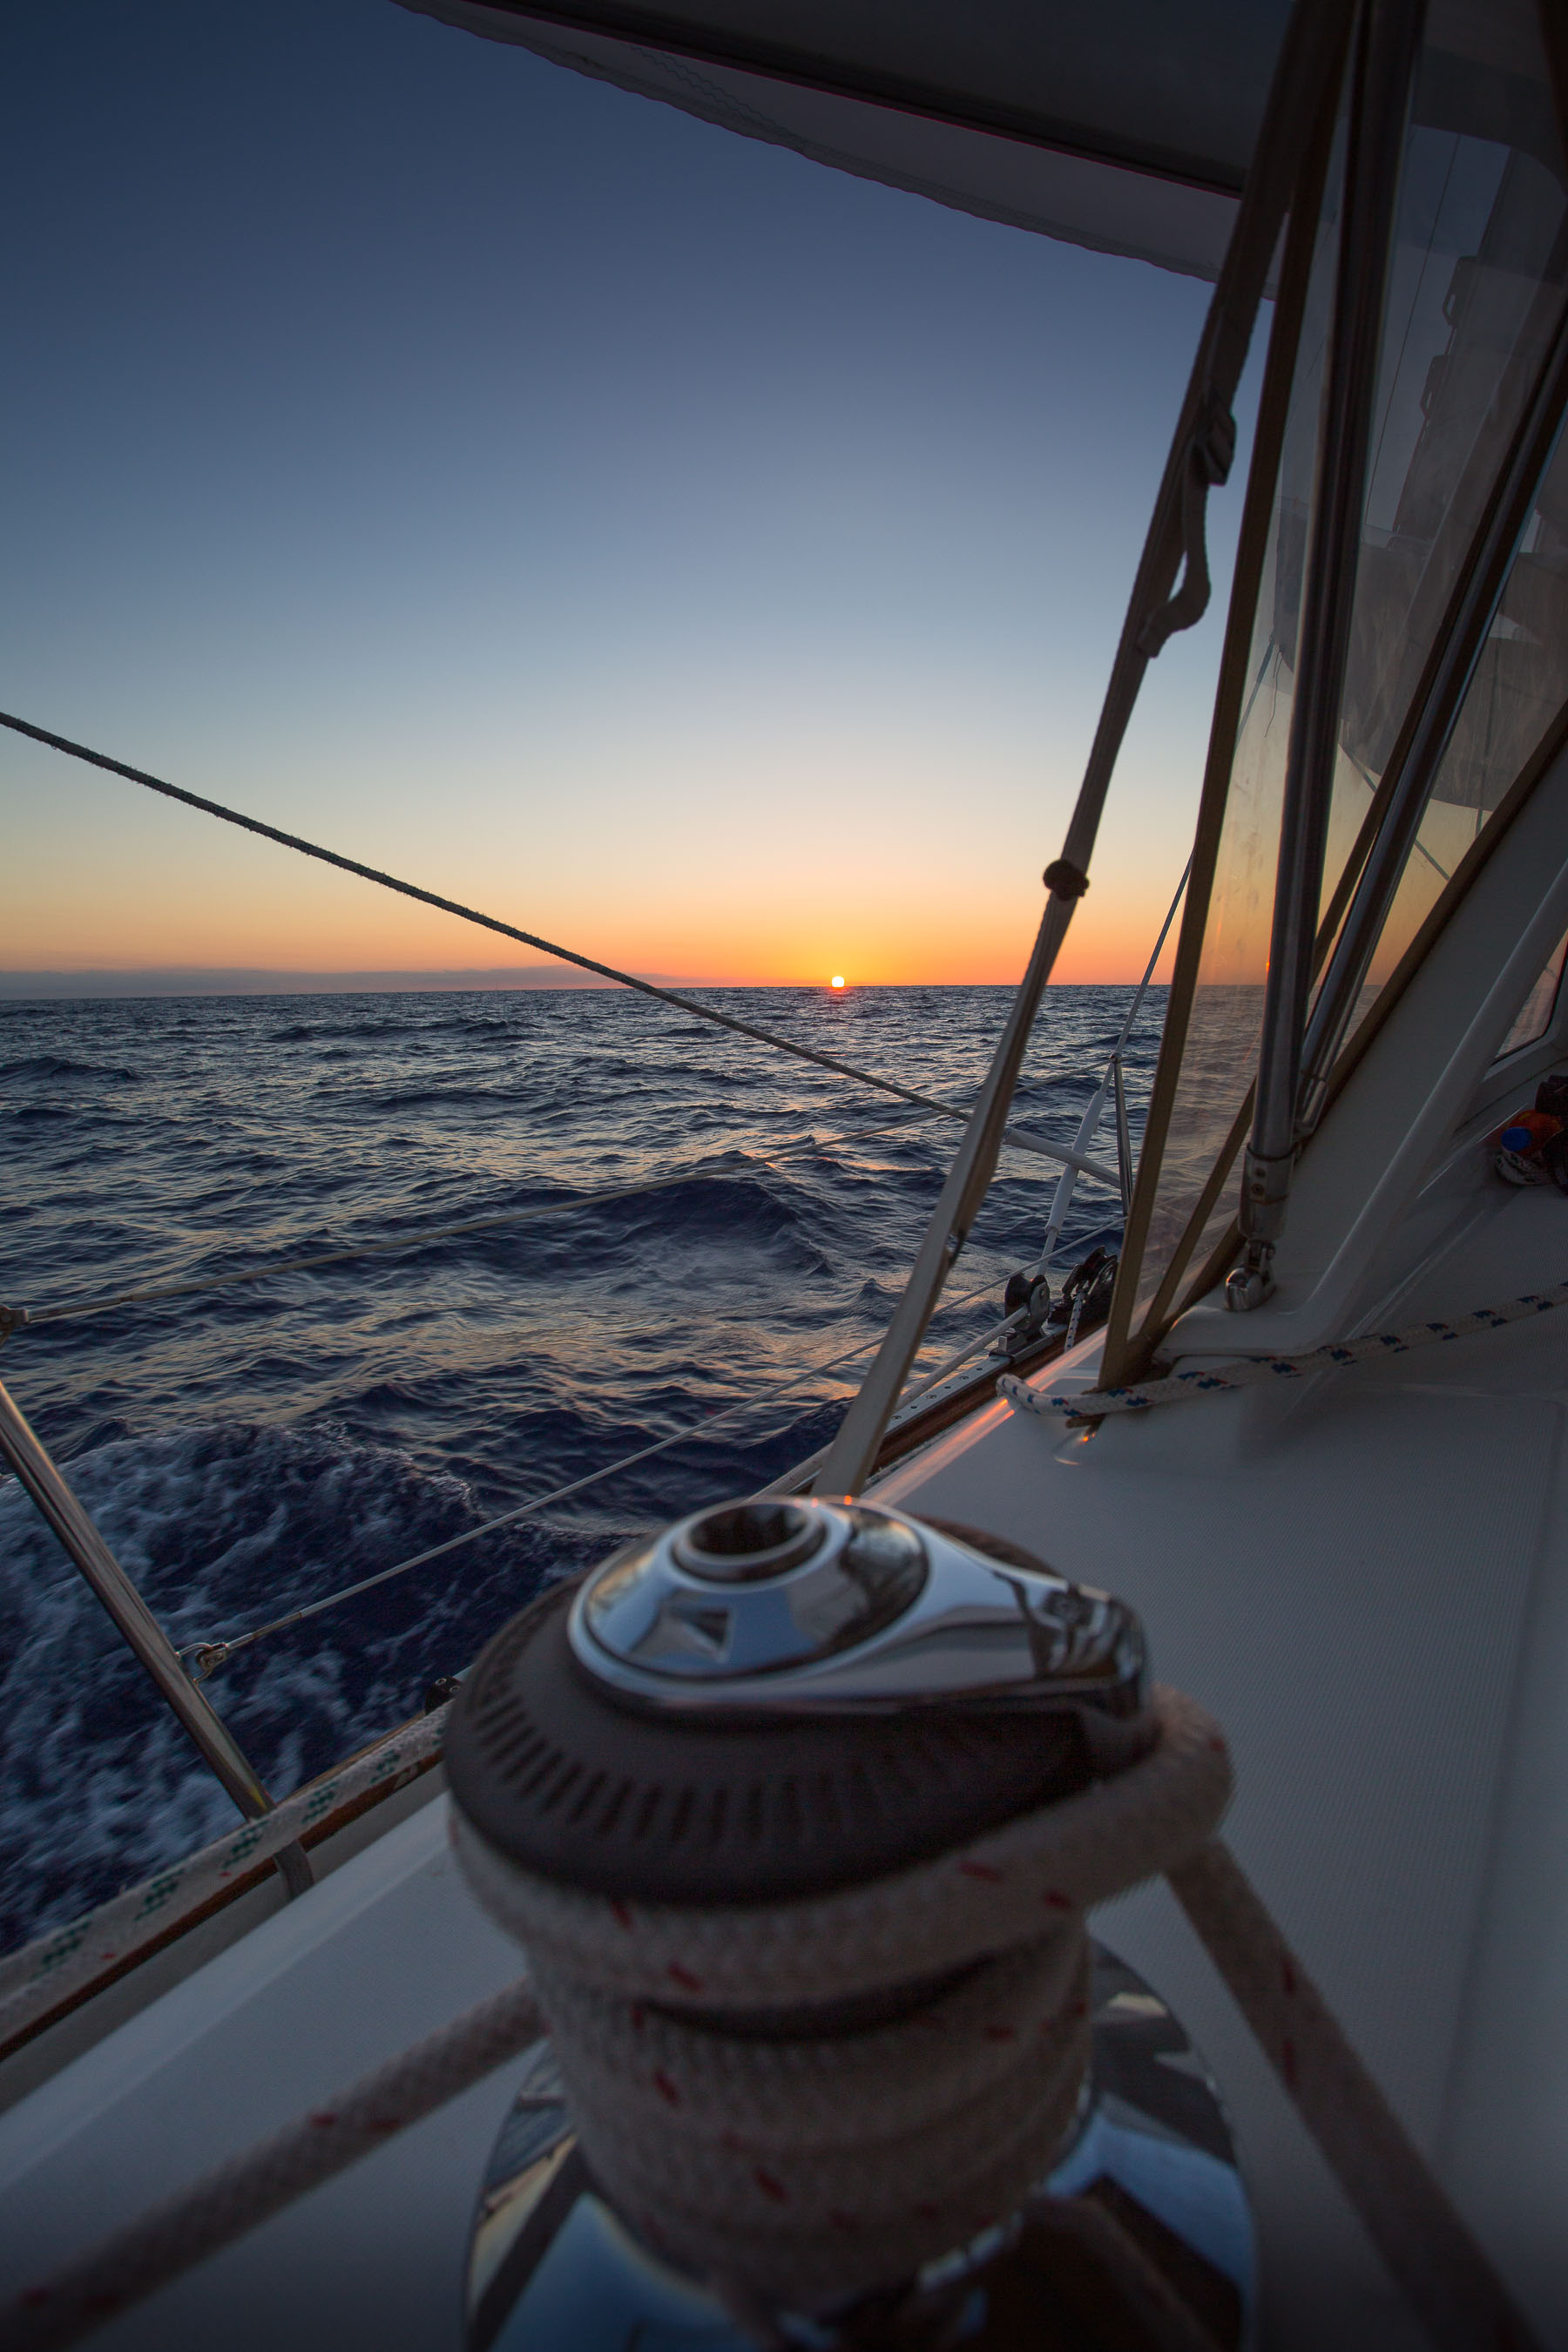 Sunset sailing from Bermuda to Massachusetts